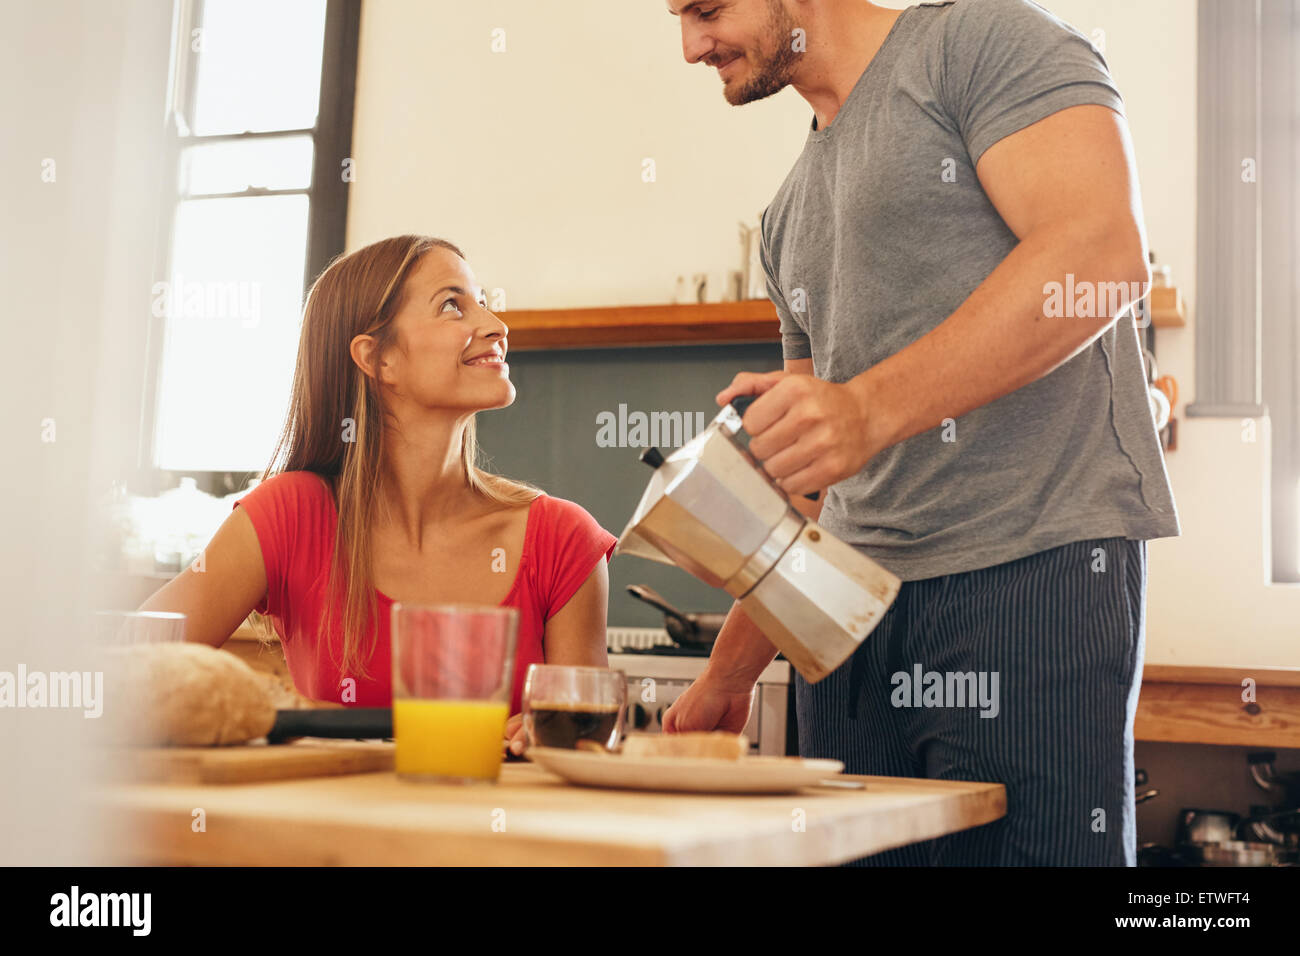 Shot of young couple having breakfast in kitchen. Young man standing and serving coffee with woman sitting by breakfast - Stock Image